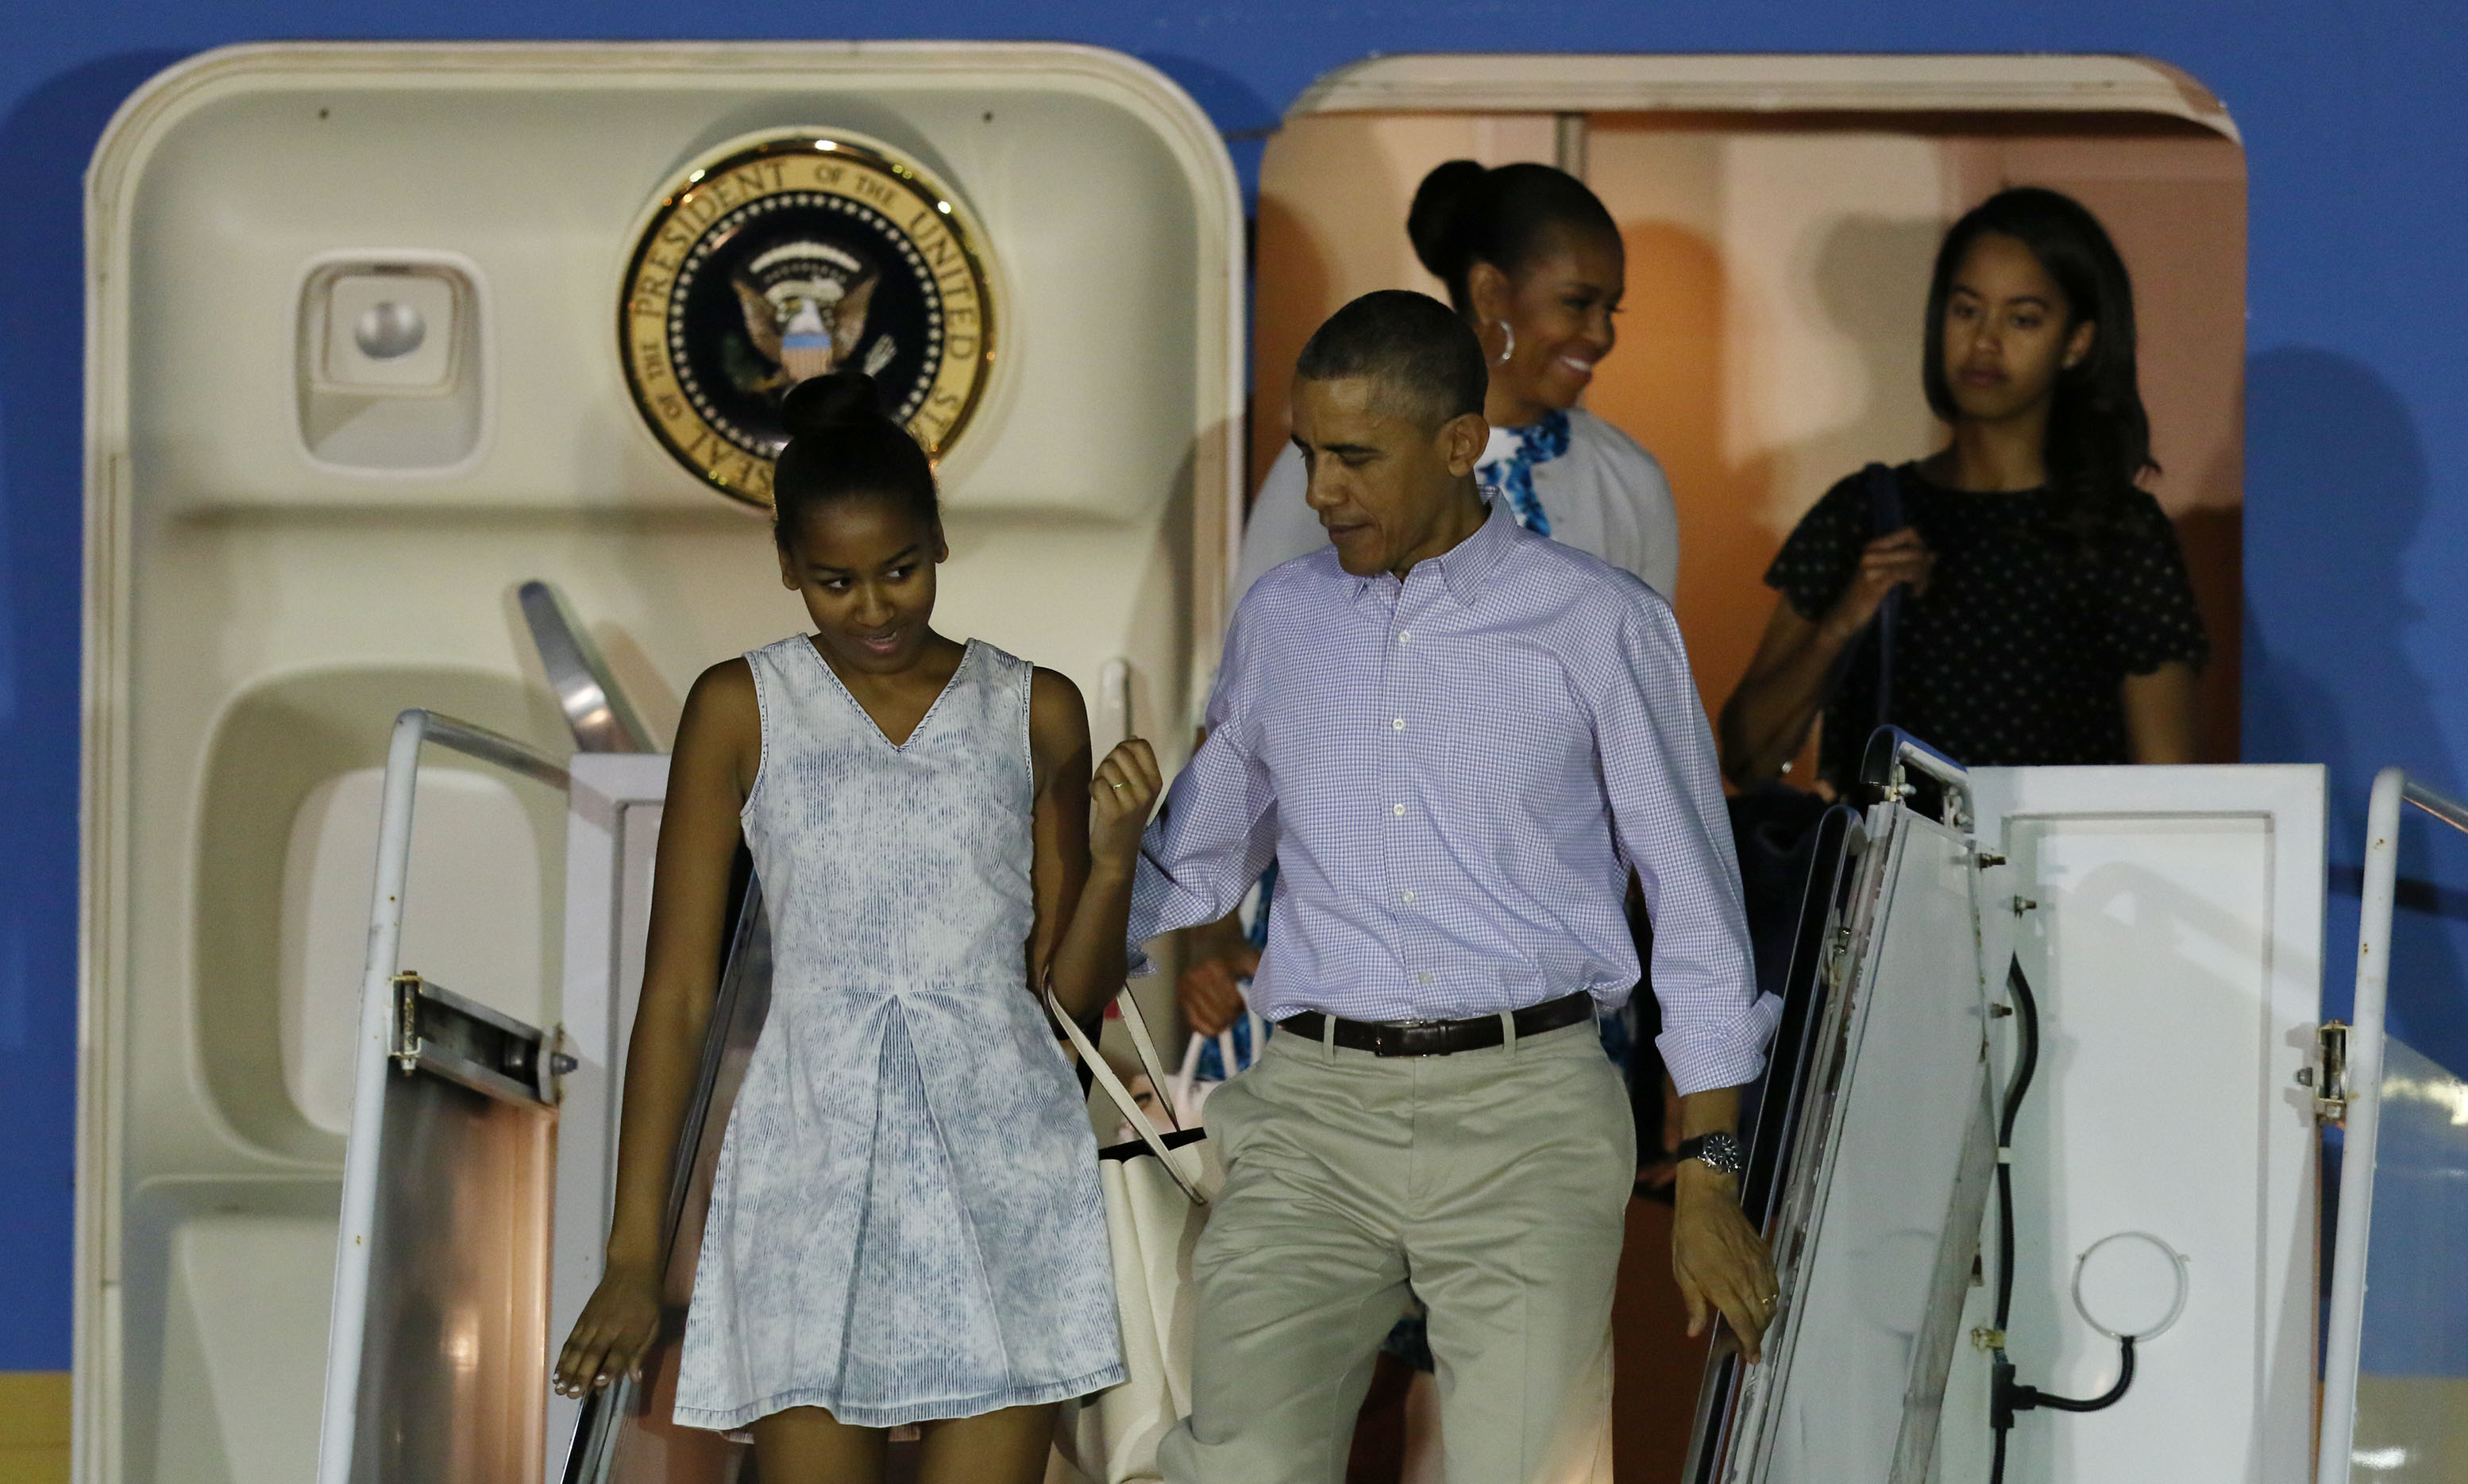 President Obama and his daughter Sasha descend the stairs, followed by First Lady Michelle Obama and daughter Malia.